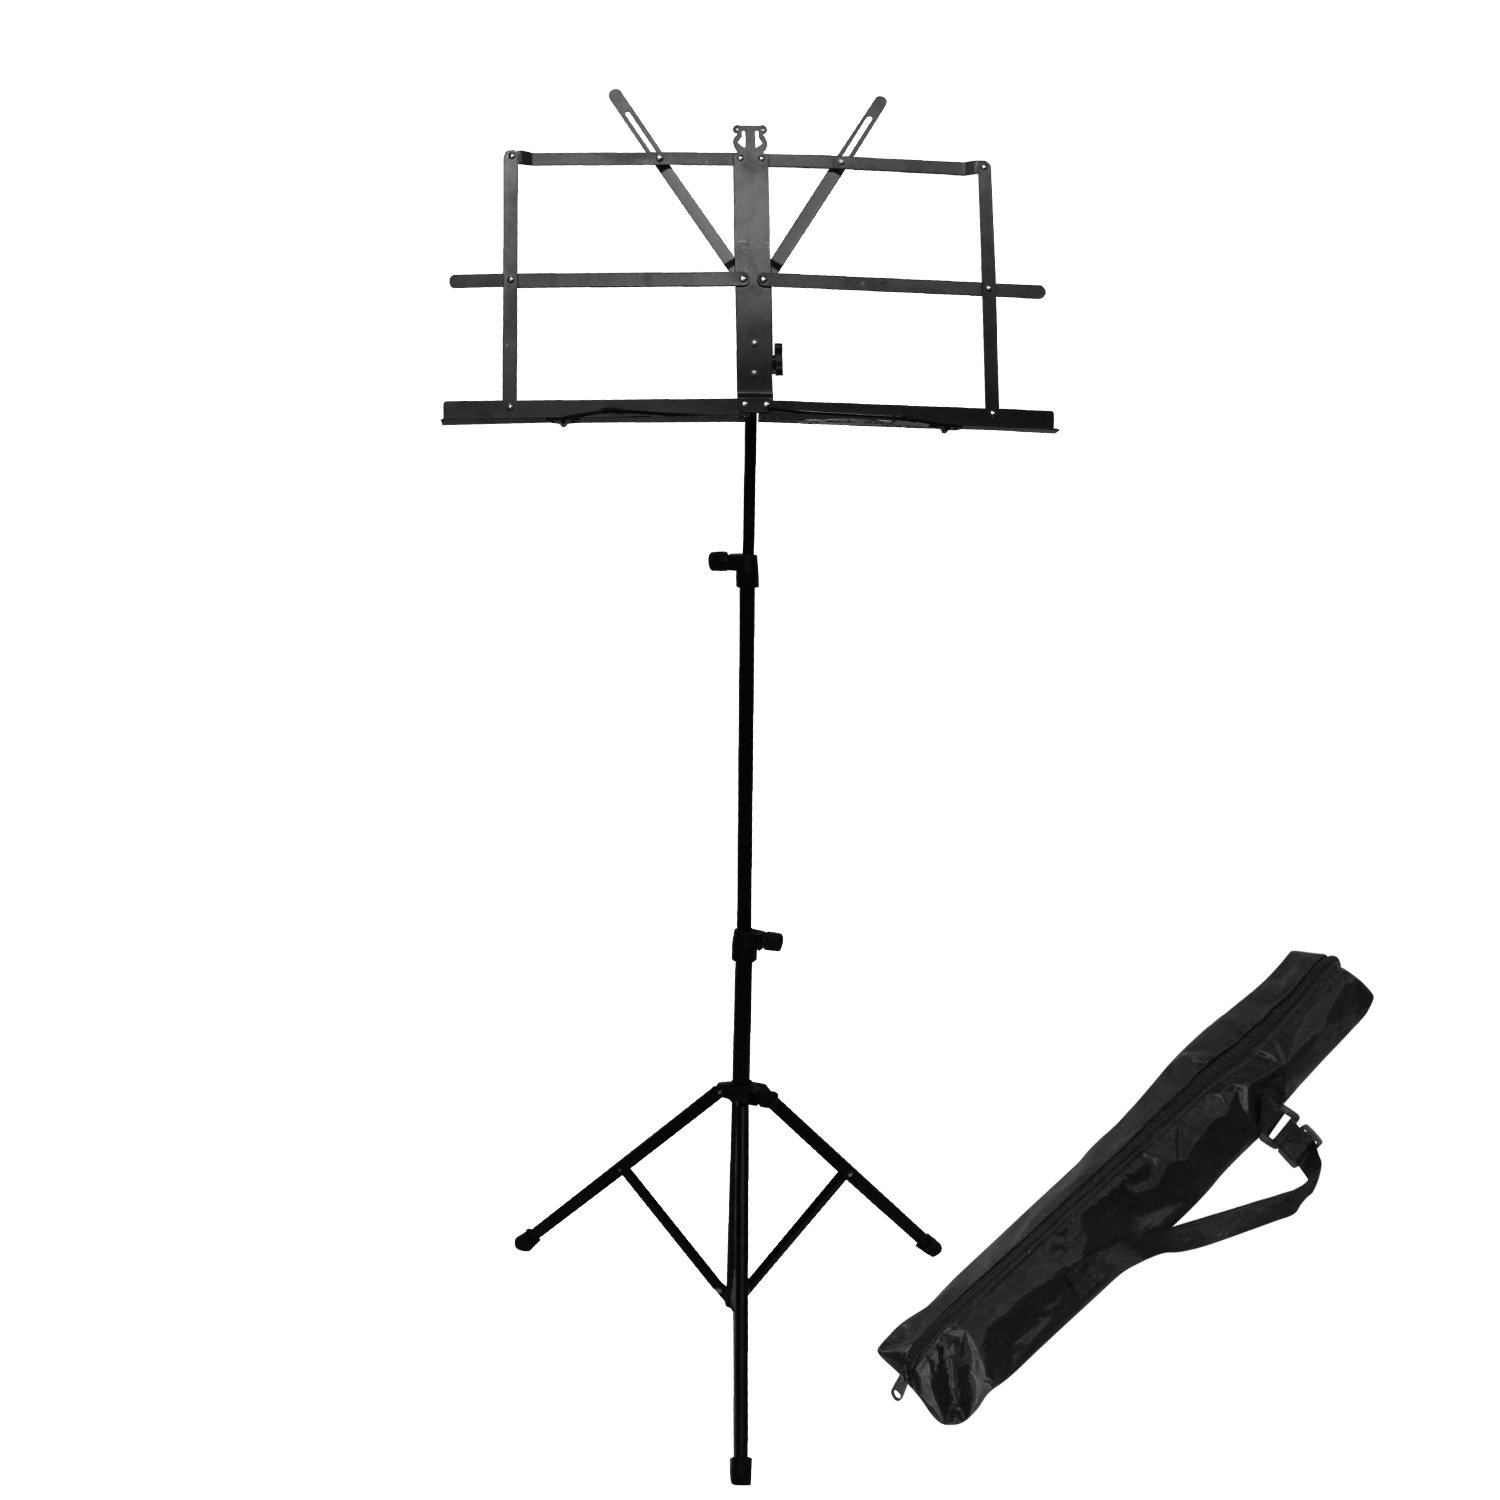 The music stand is a comfortable music stand